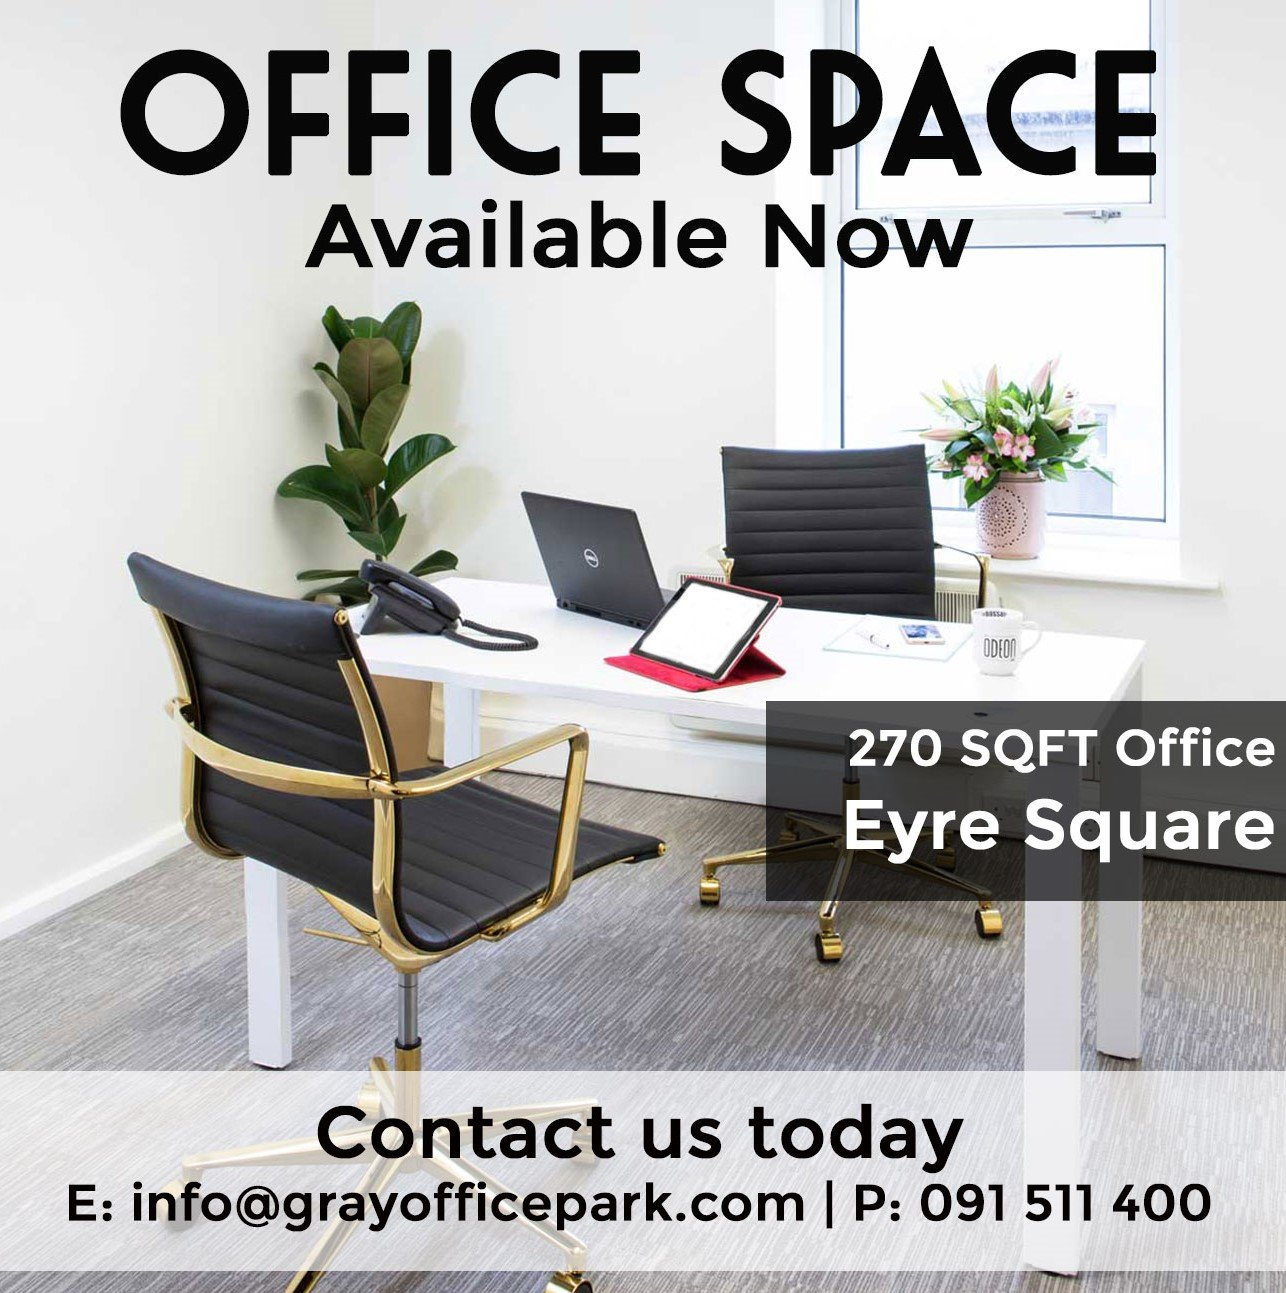 Eyre square office space